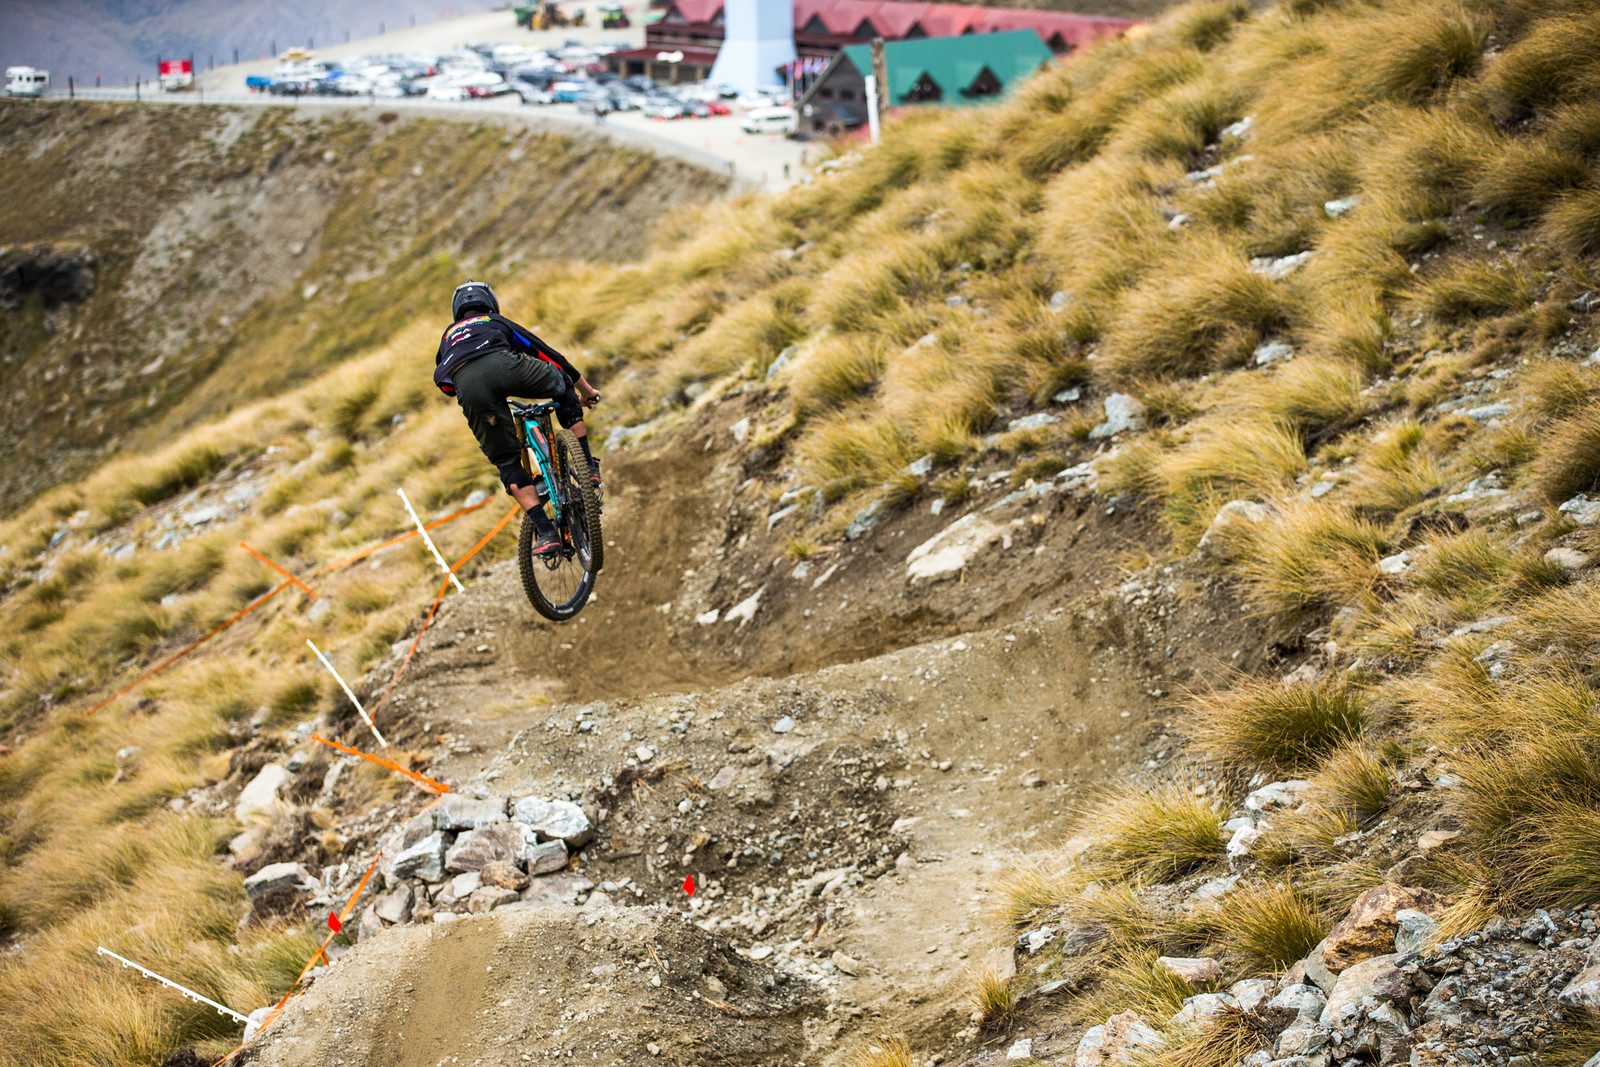 Gareth Burgess - Blenki, Brook & More - 2018 NZ National Champs Day 1 - Mountain Biking Pictures - Vital MTB